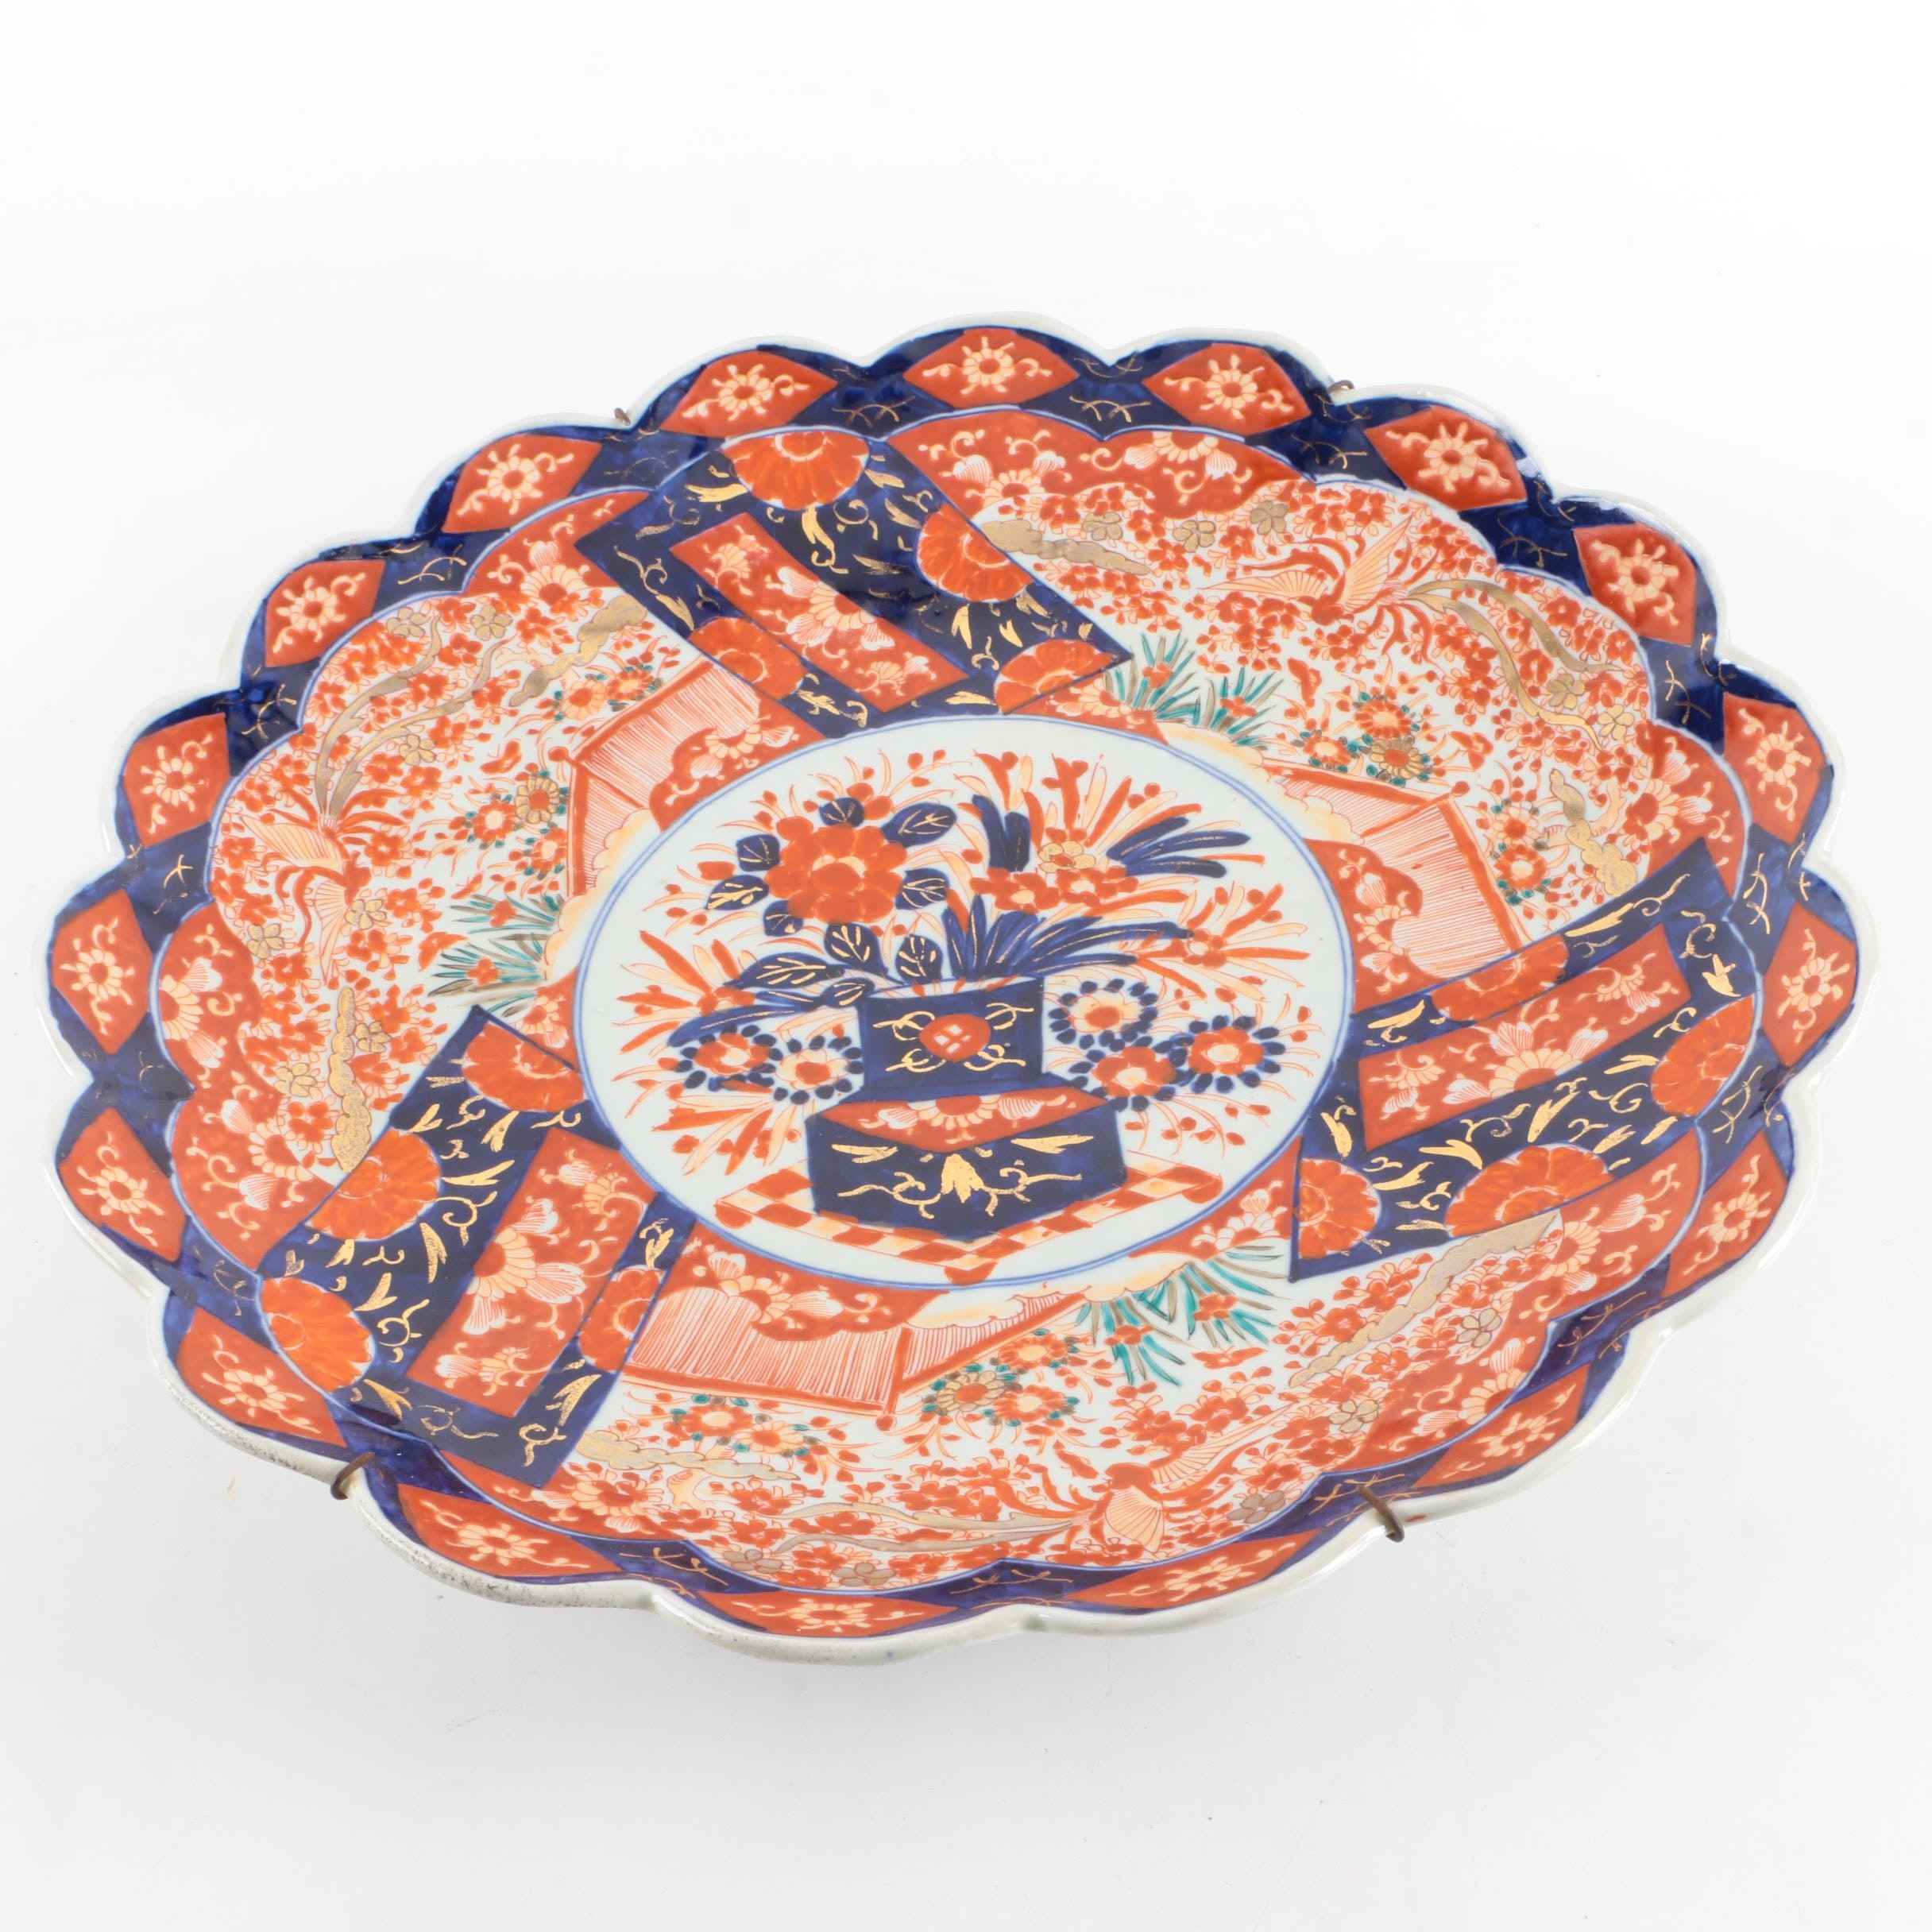 Japanese Hand Painted Decorative Imari Plate